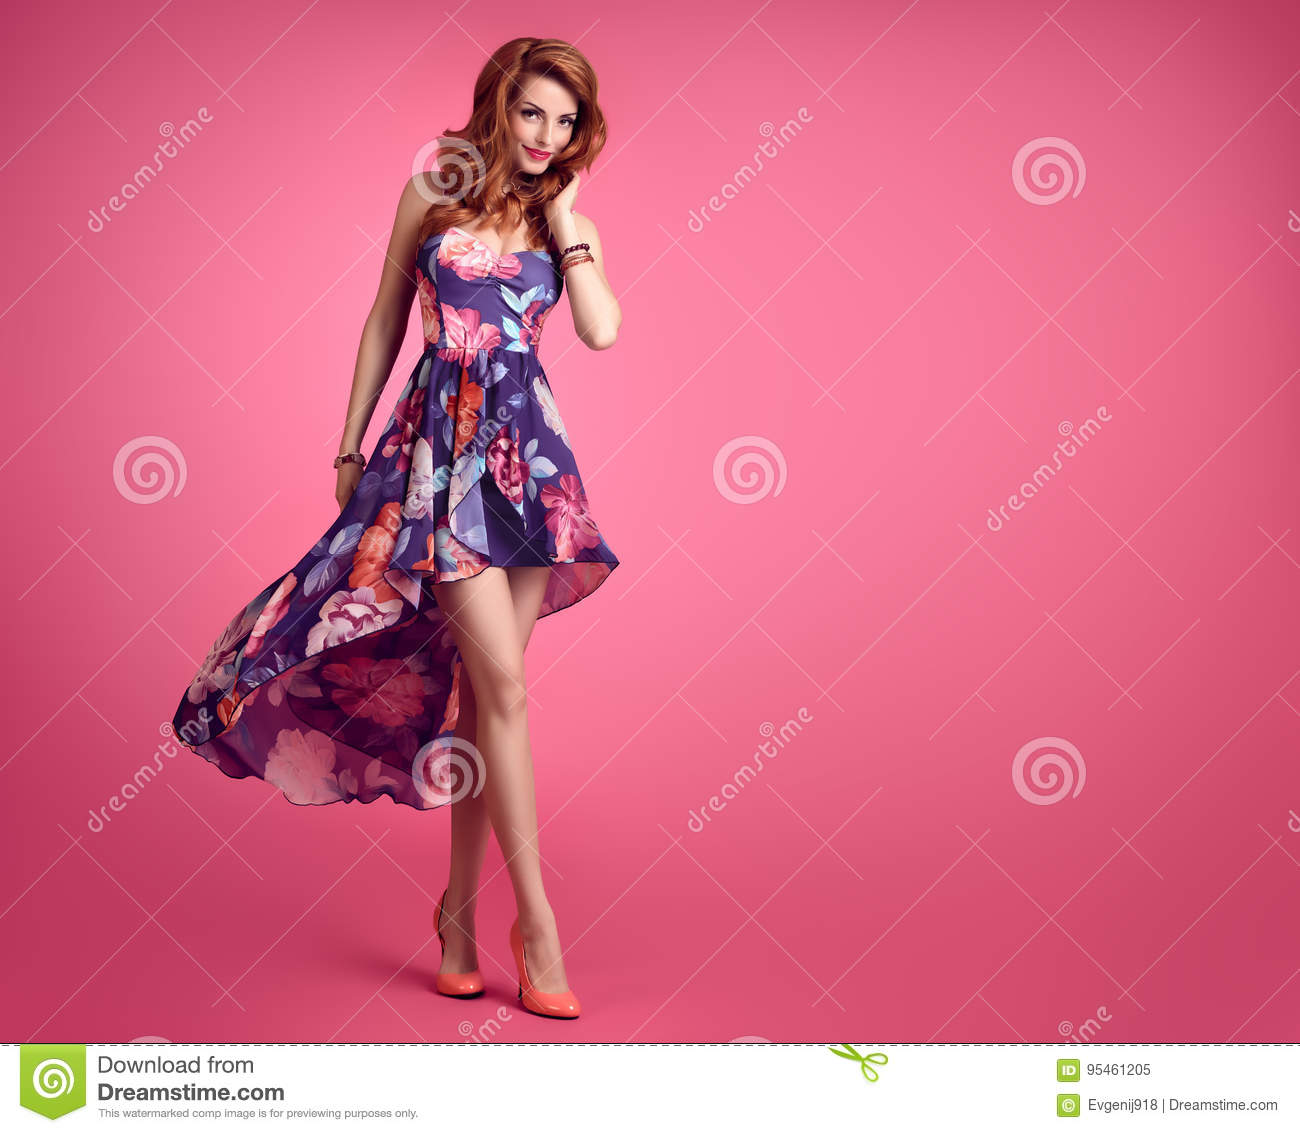 95f24d133d Sensual Redhead woman in Fashion Trendy Floral summer Dress Smiling. Beauty  Model in fashion pose. Stylish Curly Wavy hairstyle